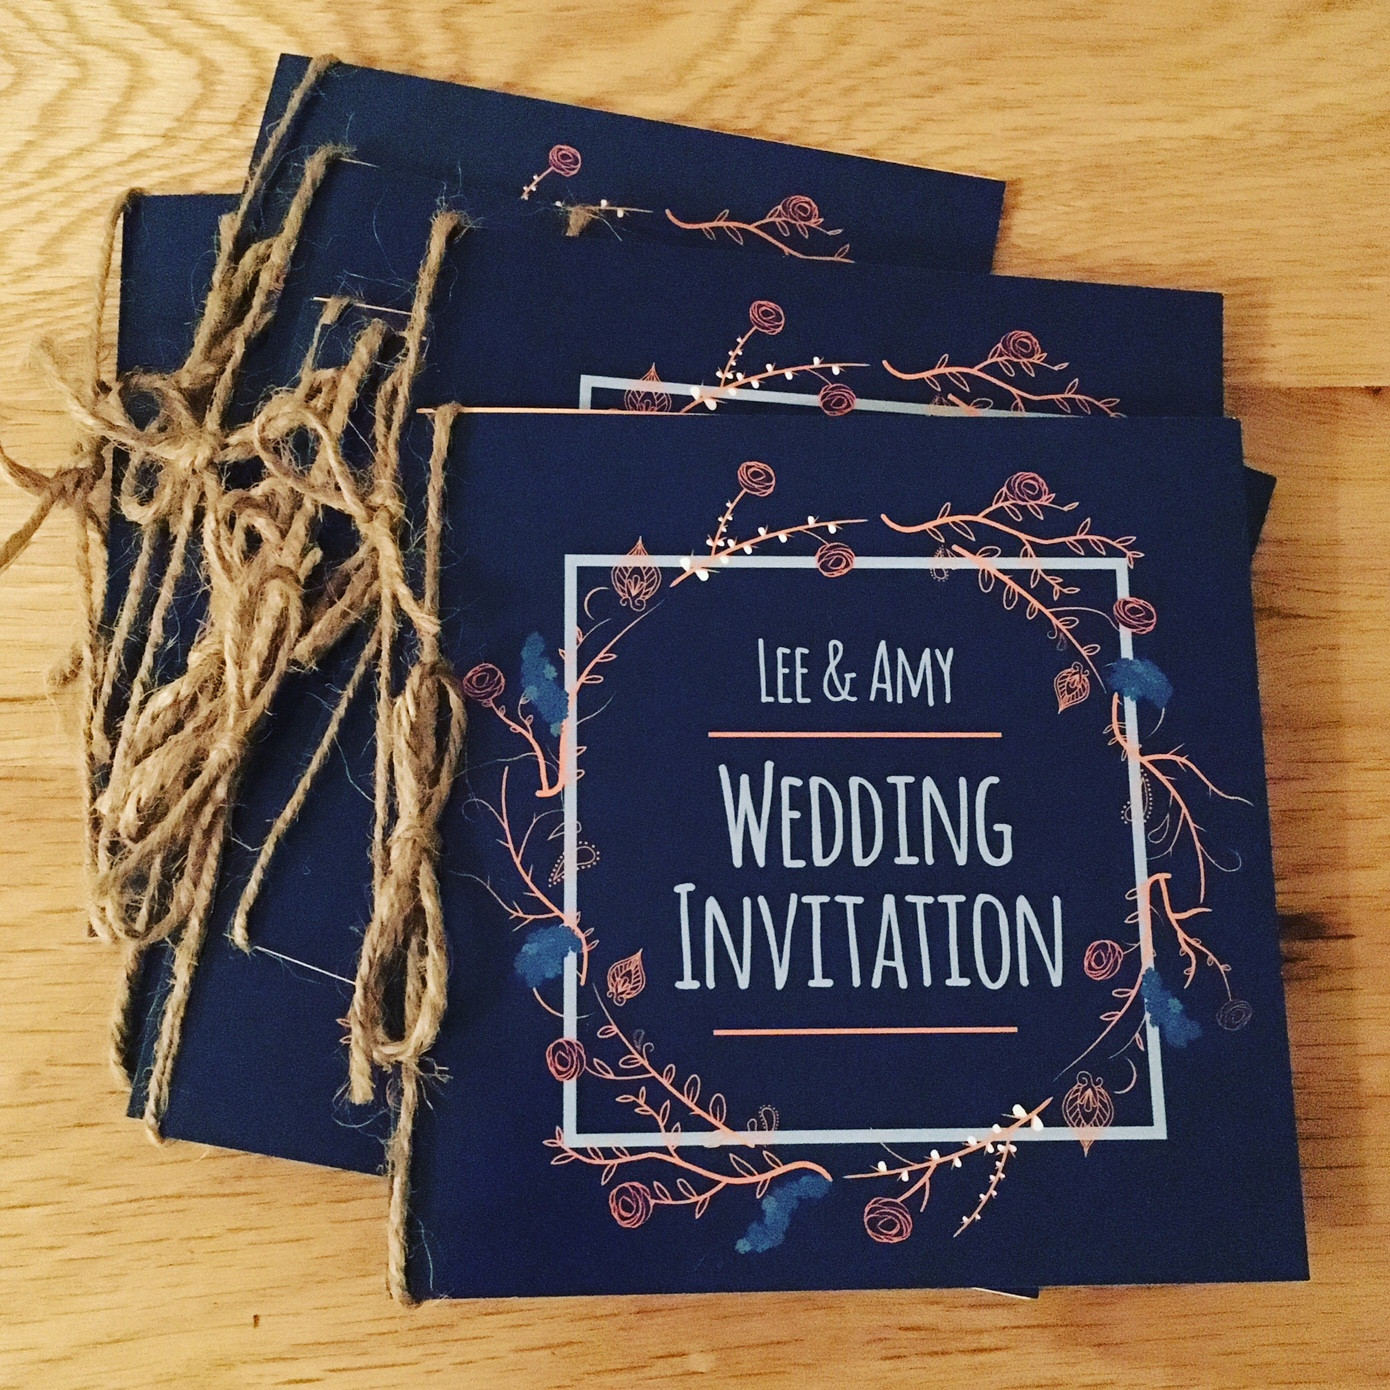 Wedding invites for your special day